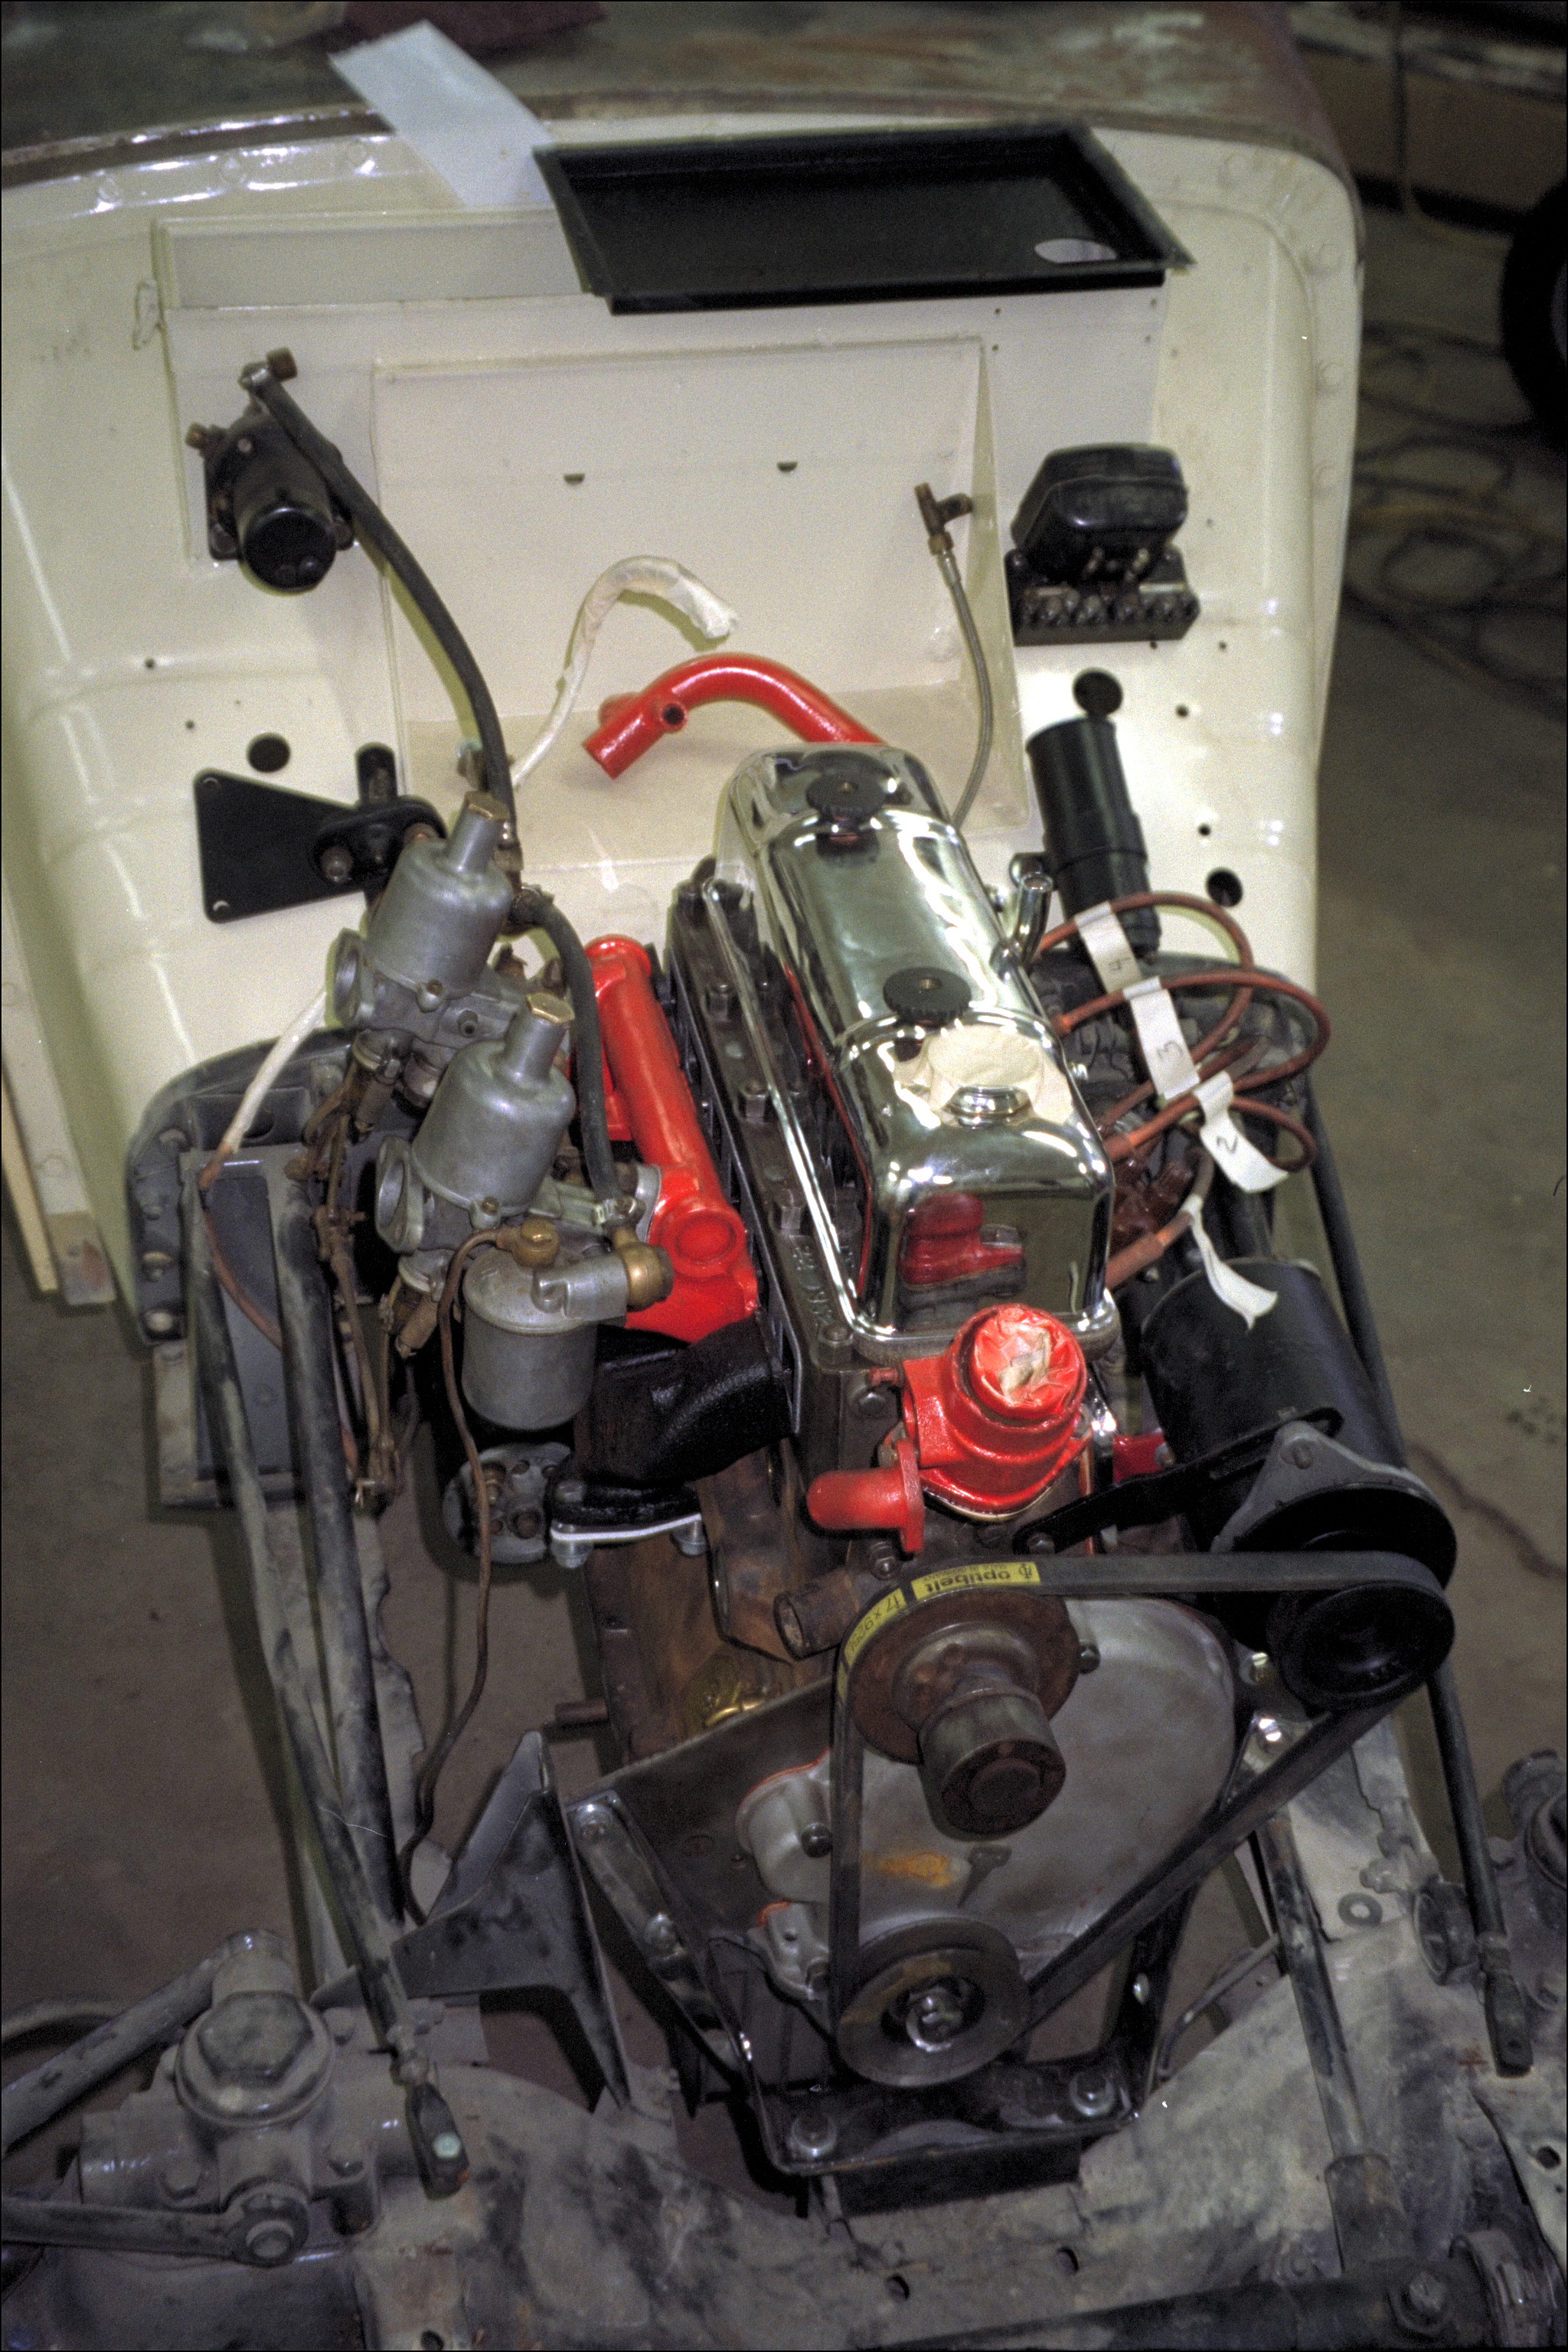 Top view of installed engine